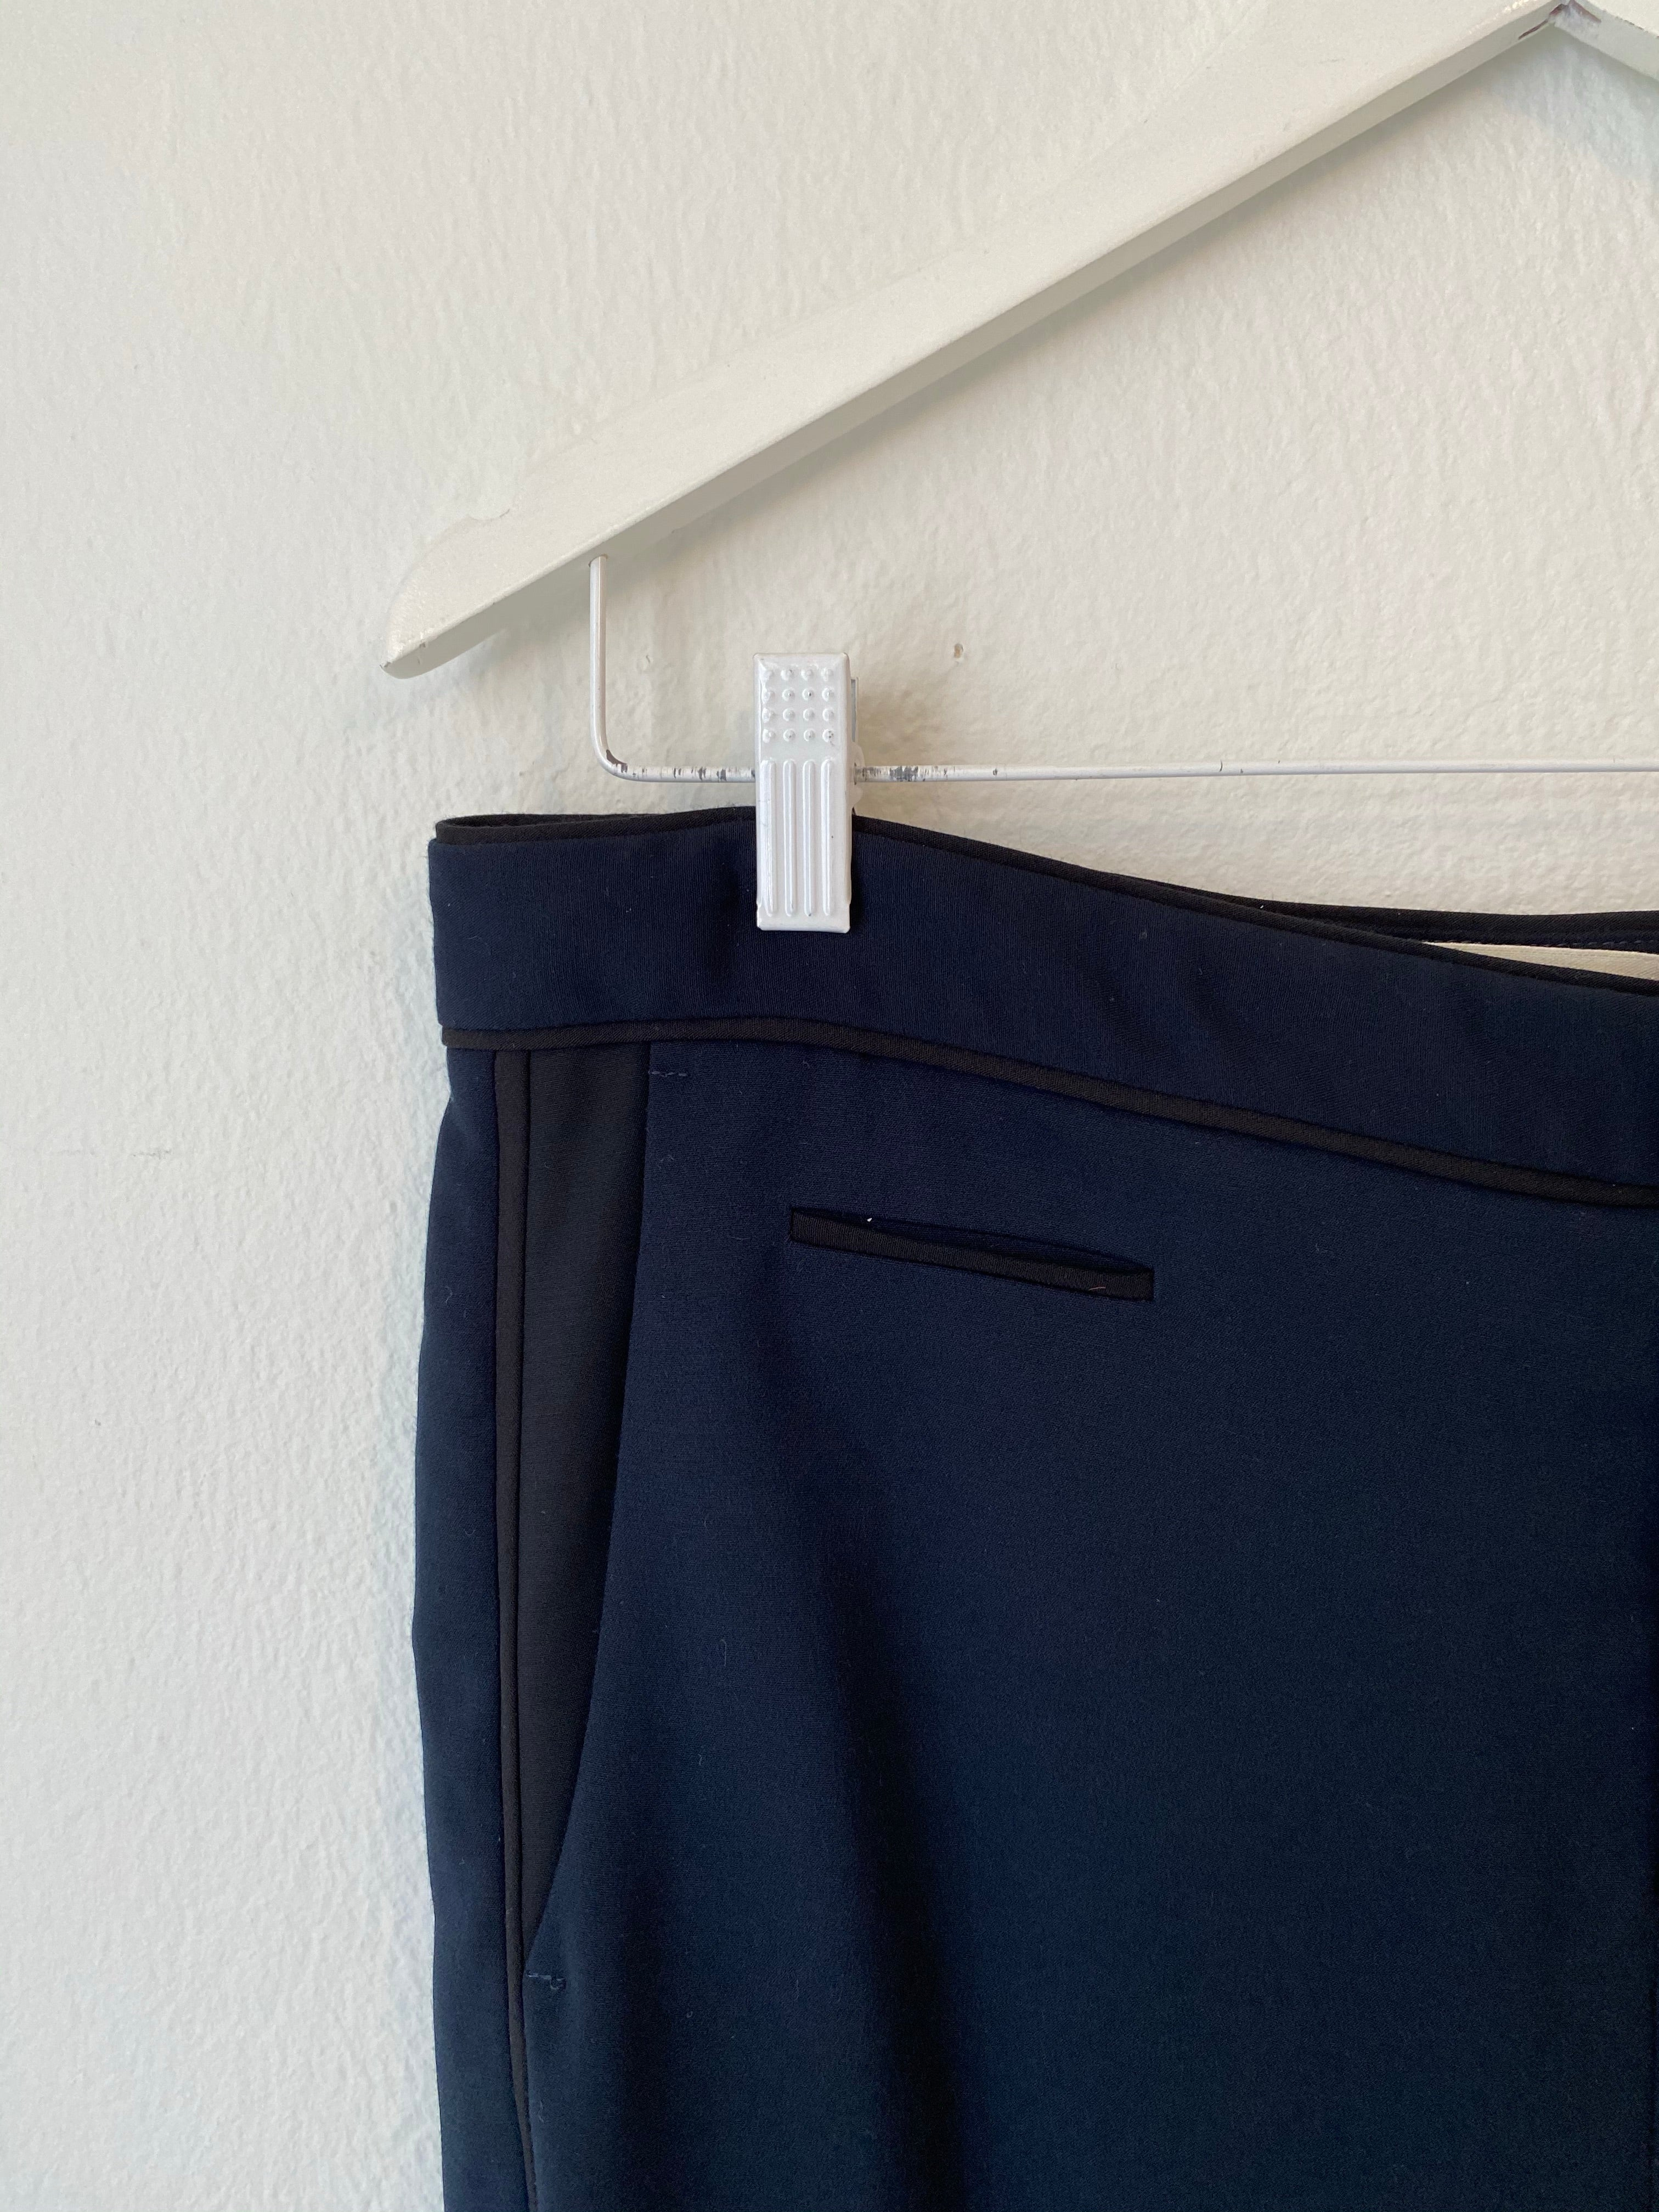 Marni Navy Trousers- M